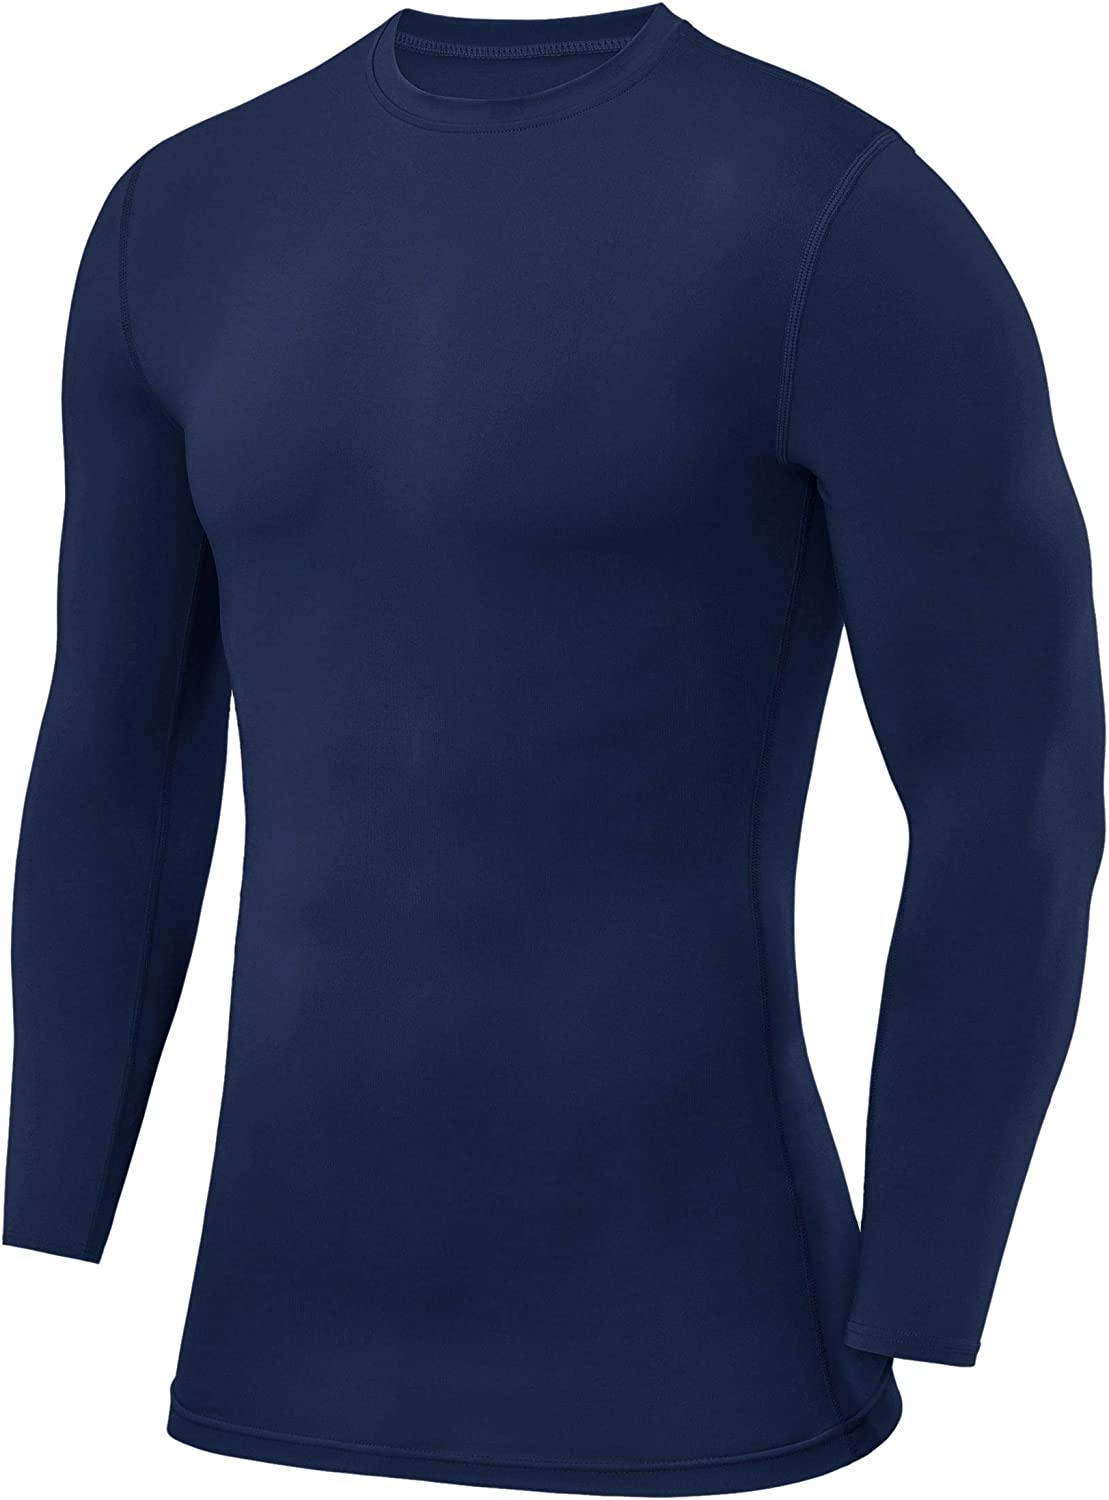 PowerLayer Men's and Boys' Compression Baselayer Top Long Sleeve Under Shirt - Crew Neck/Mock Neck: Clothing